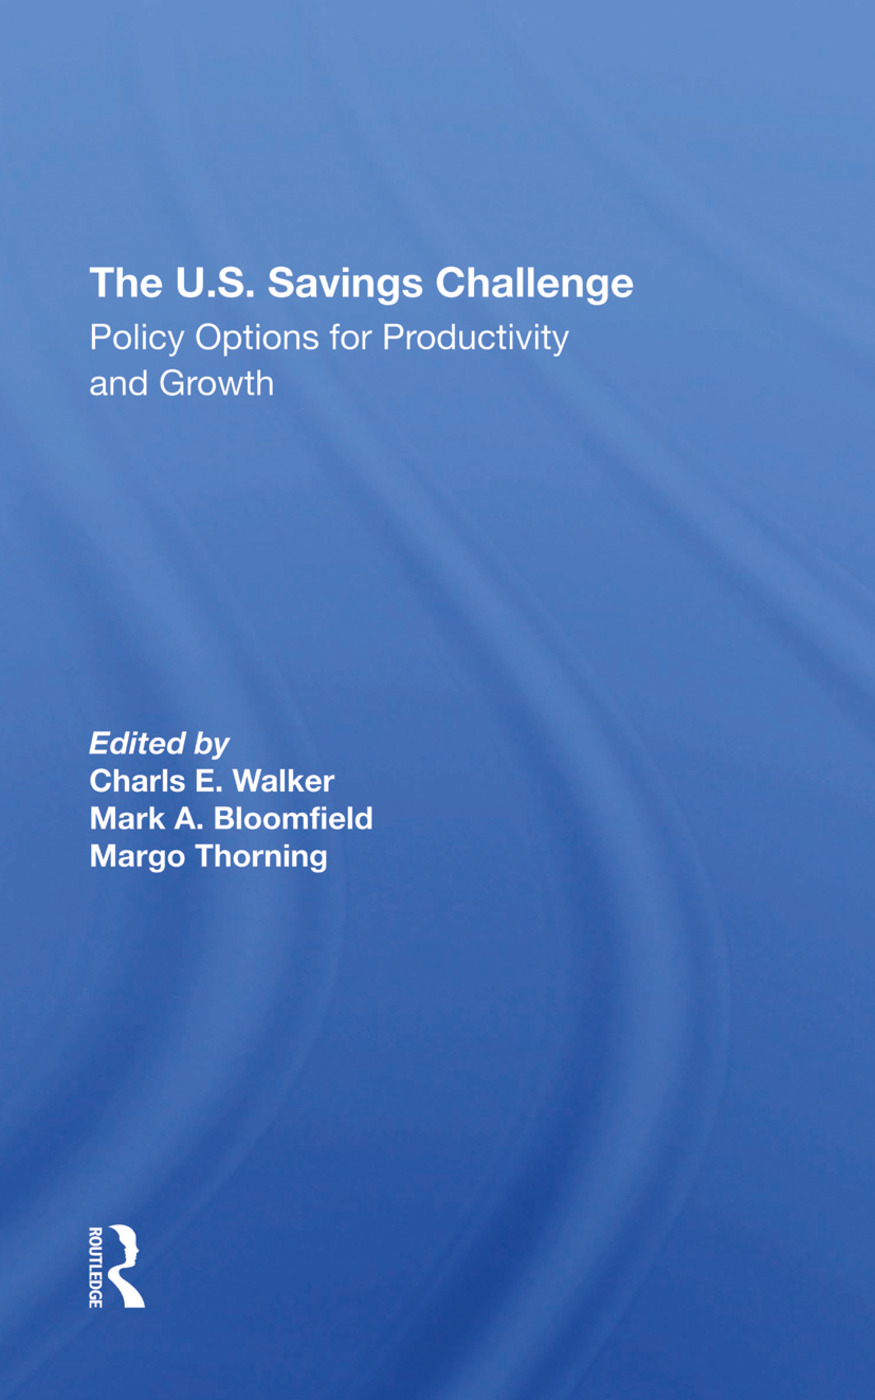 The U.S. Savings Challenge: Policy Options For Productivity And Growth book cover